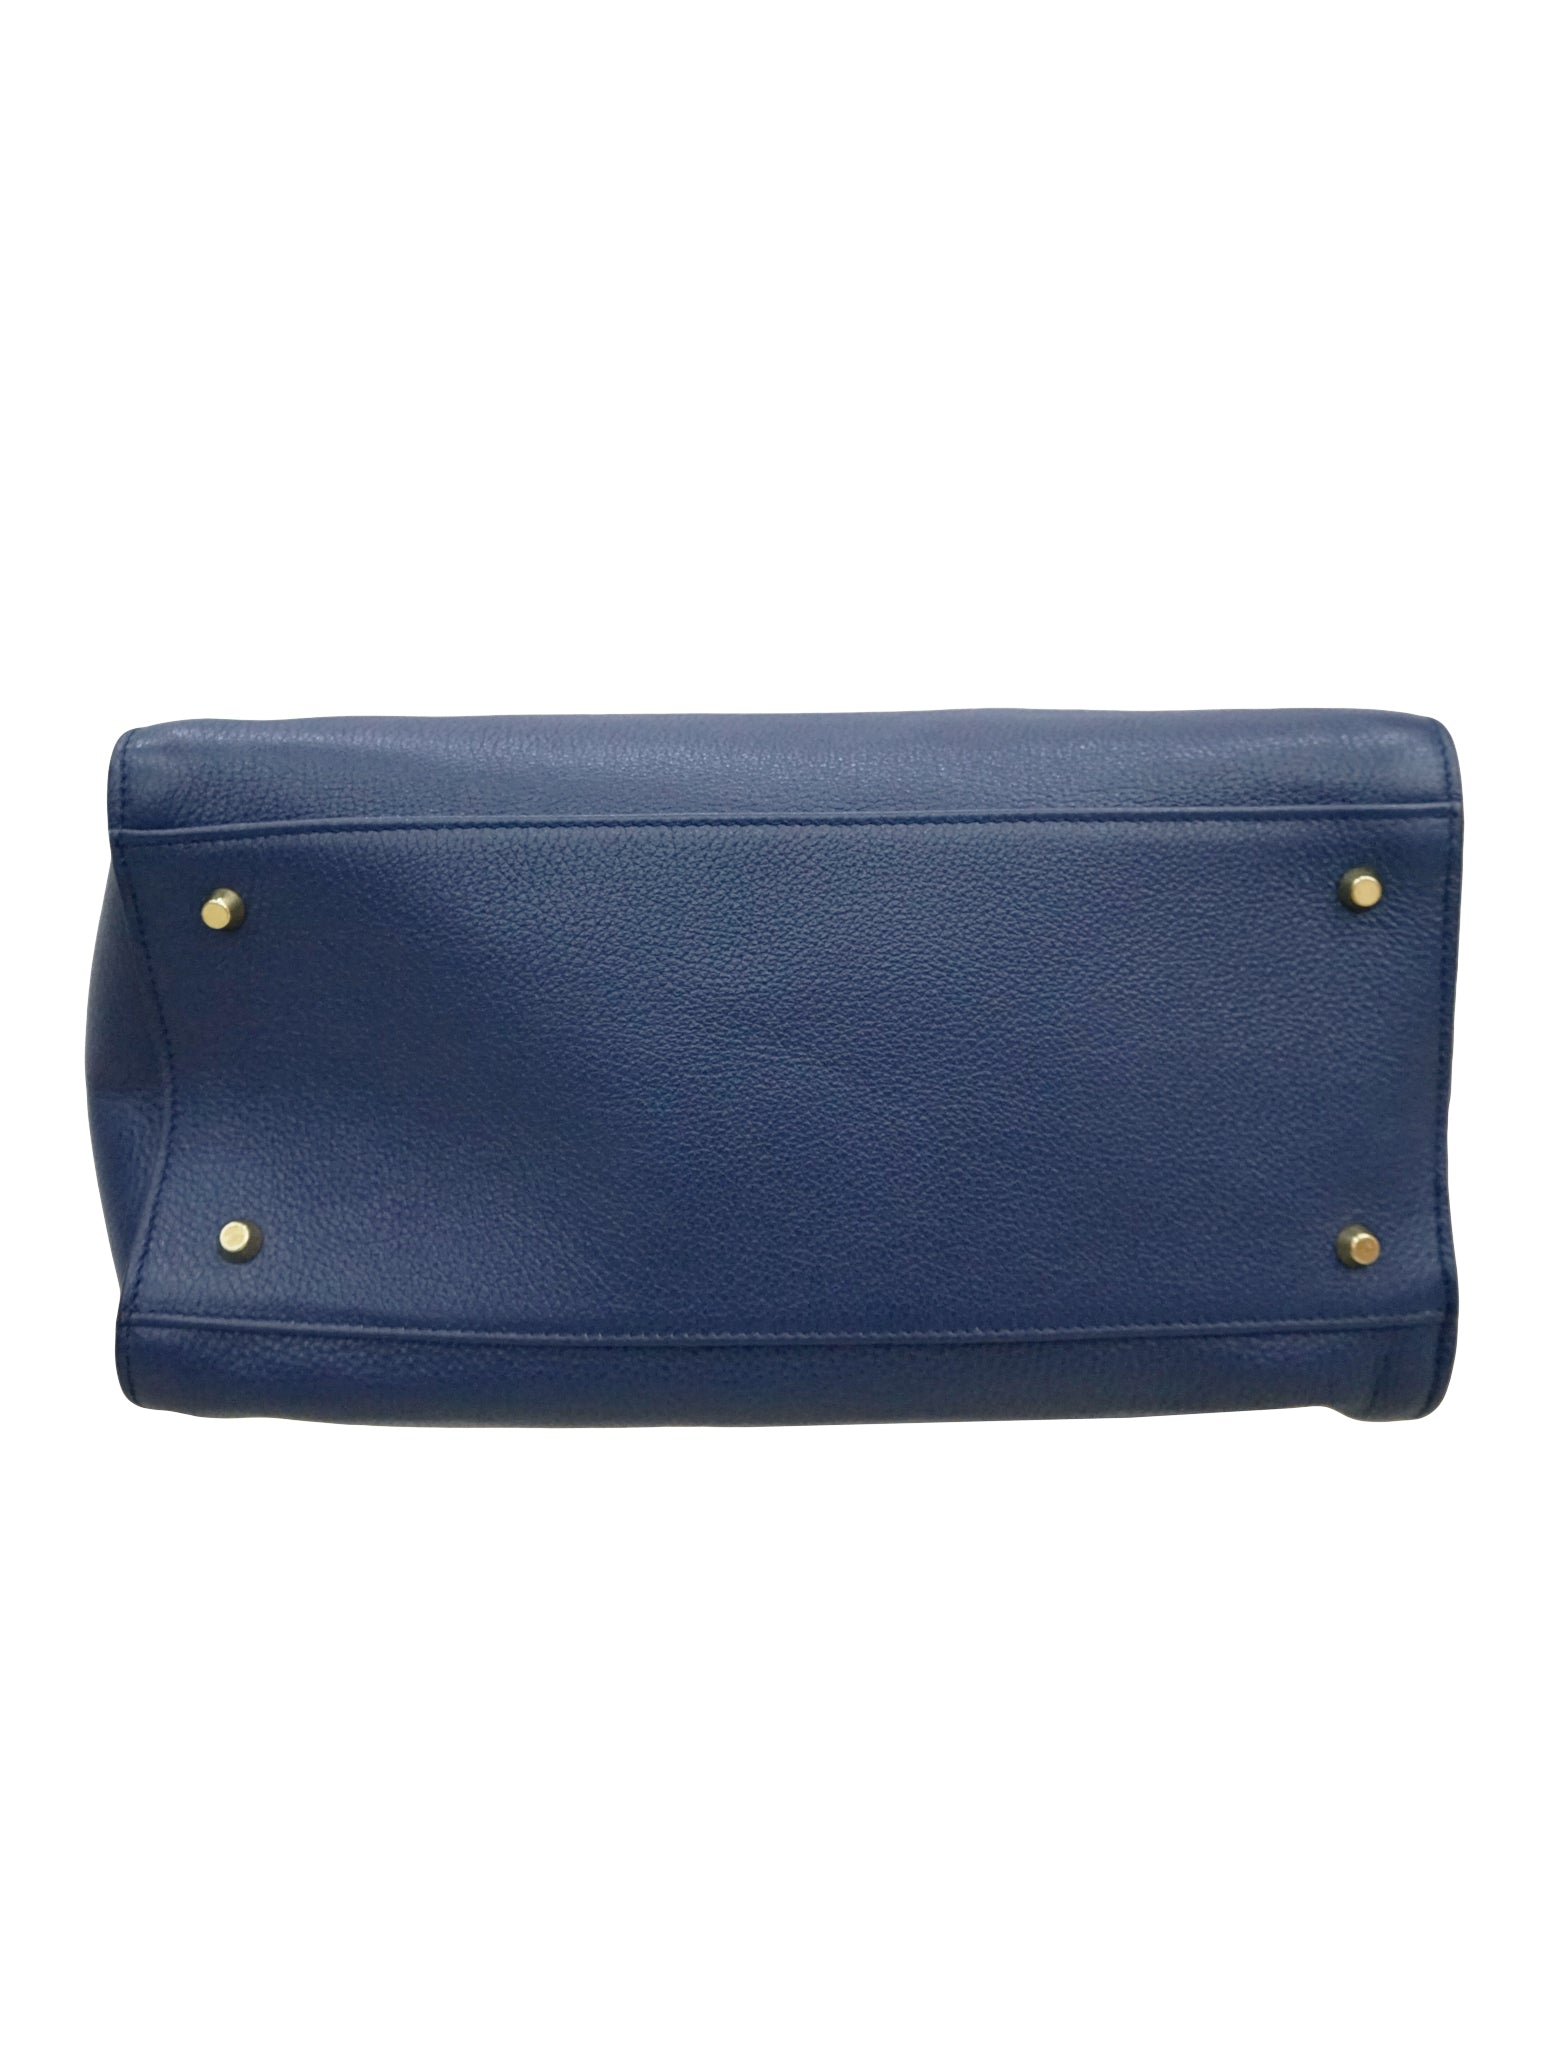 BLUE LEATHER SATCHEL BAG